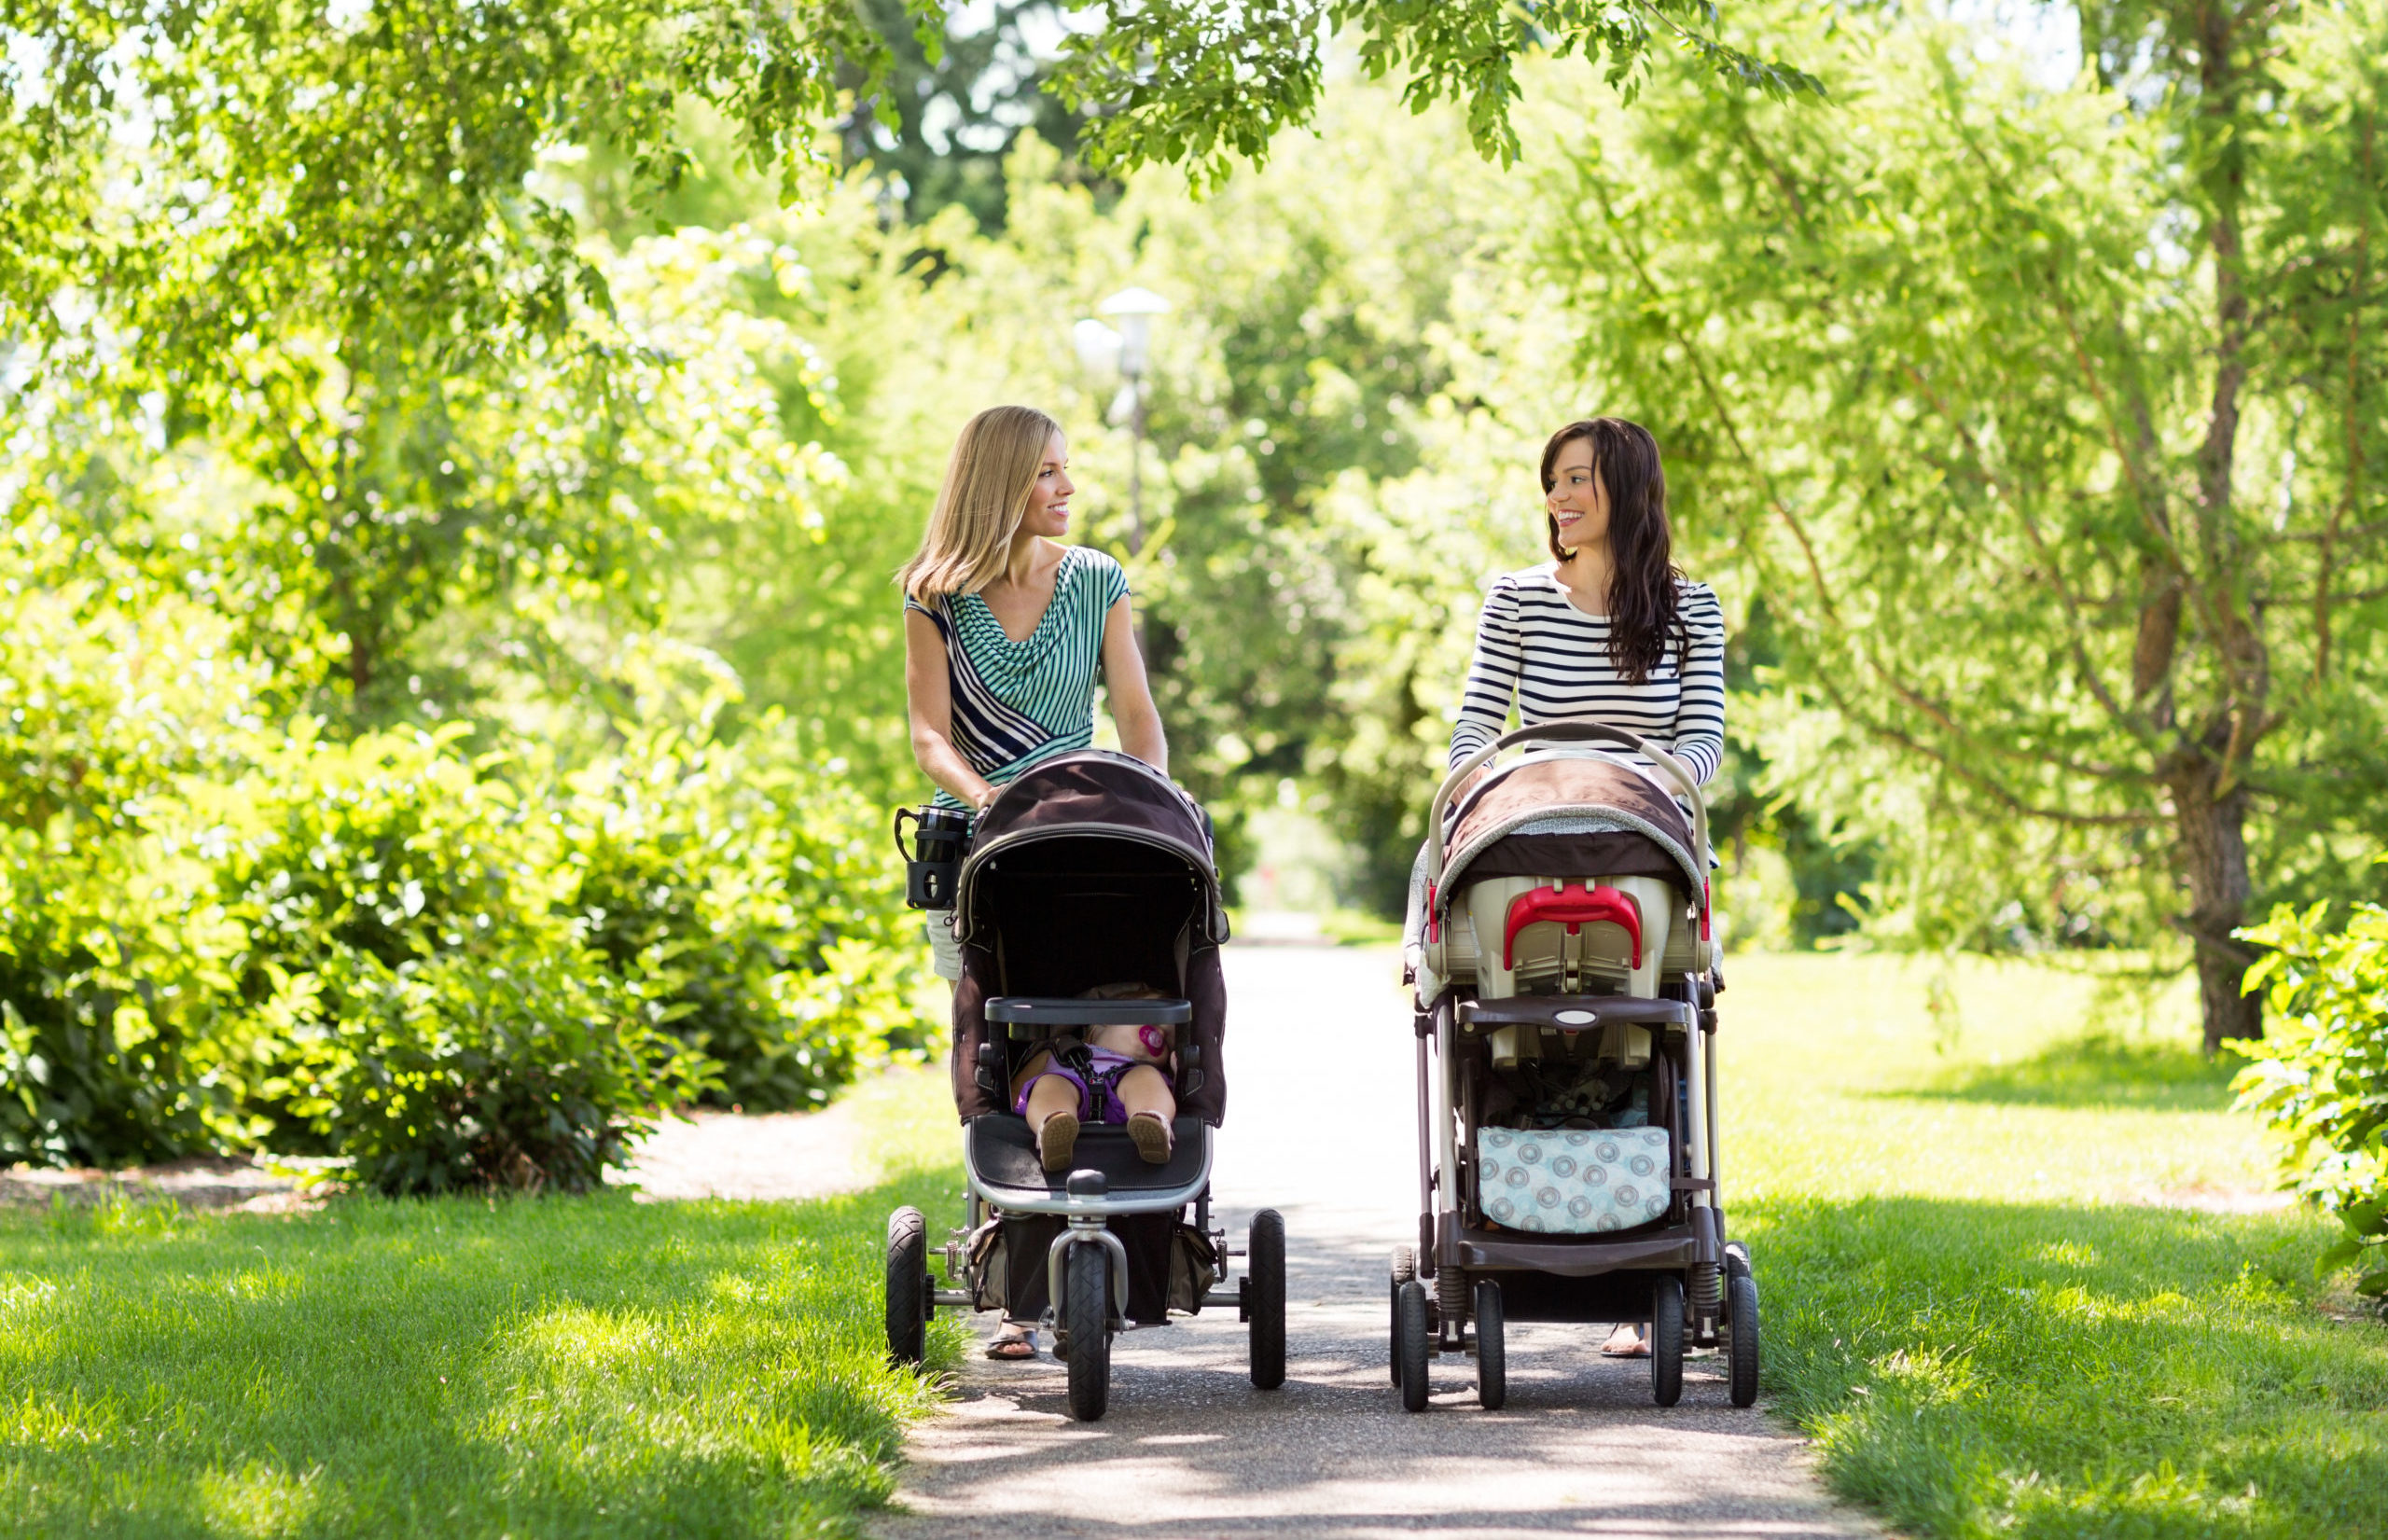 Two women pushing two babies in two strollers in the park